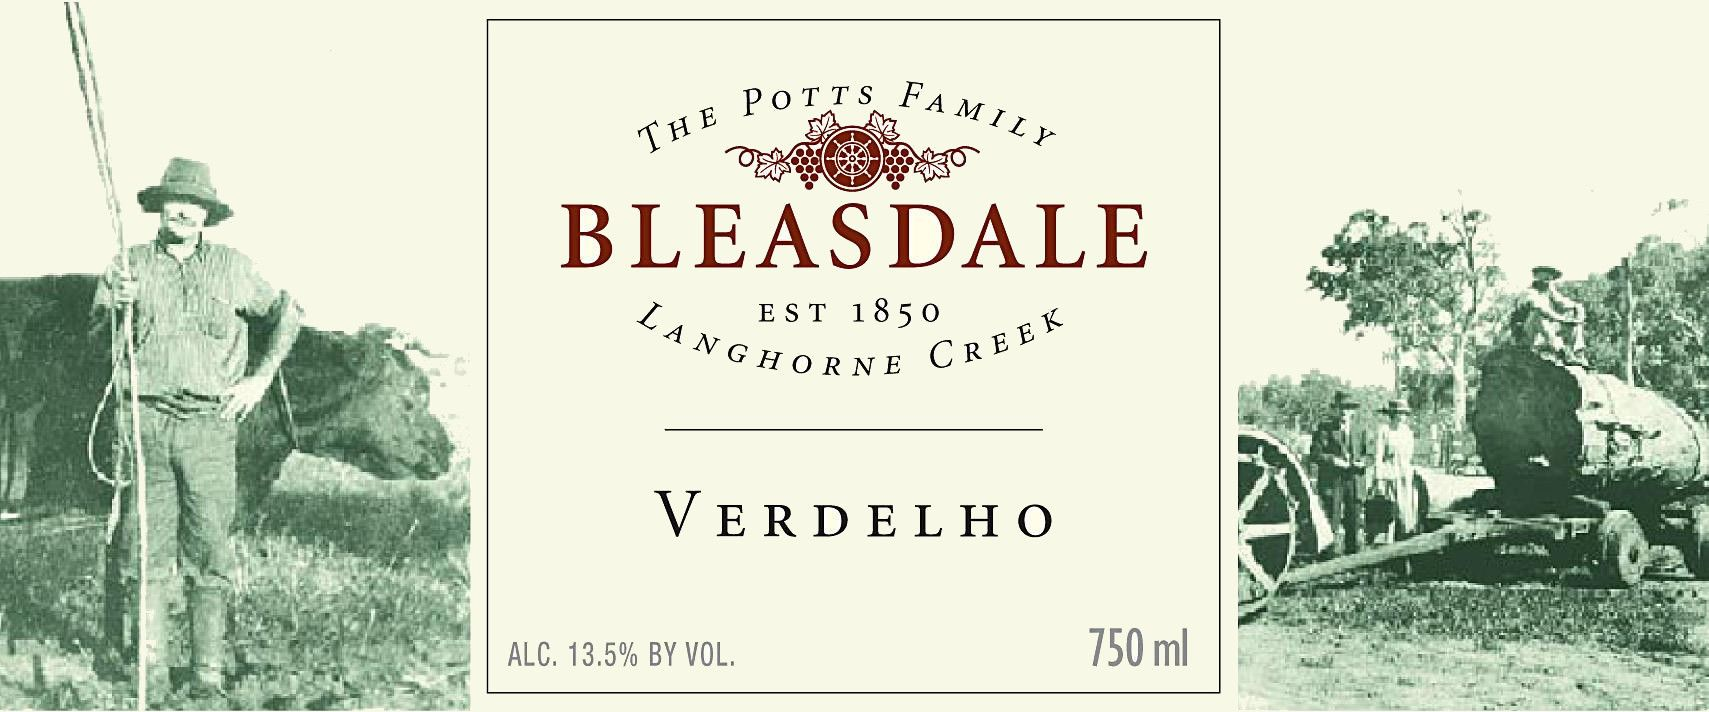 Bleasdale Potts Catch Verdelho 2014 Front Label